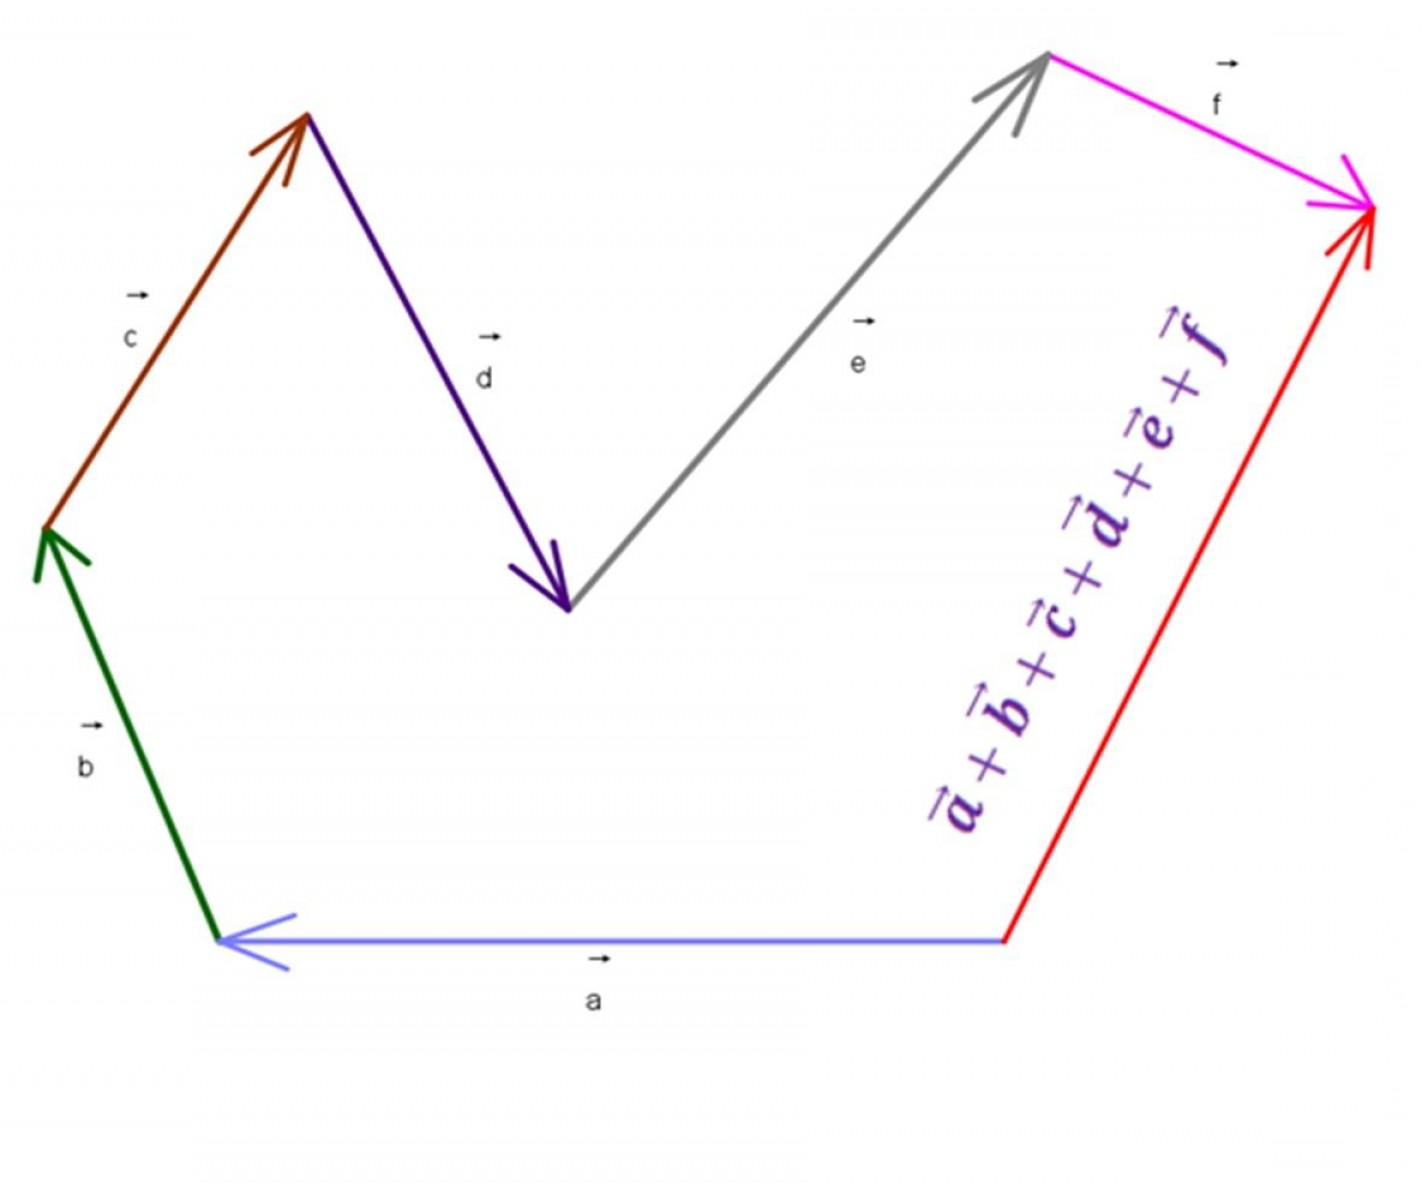 Vector Addition By Pythagoras Picture: Top Formulas For Pythagorean Theorem And Vector Addition Image